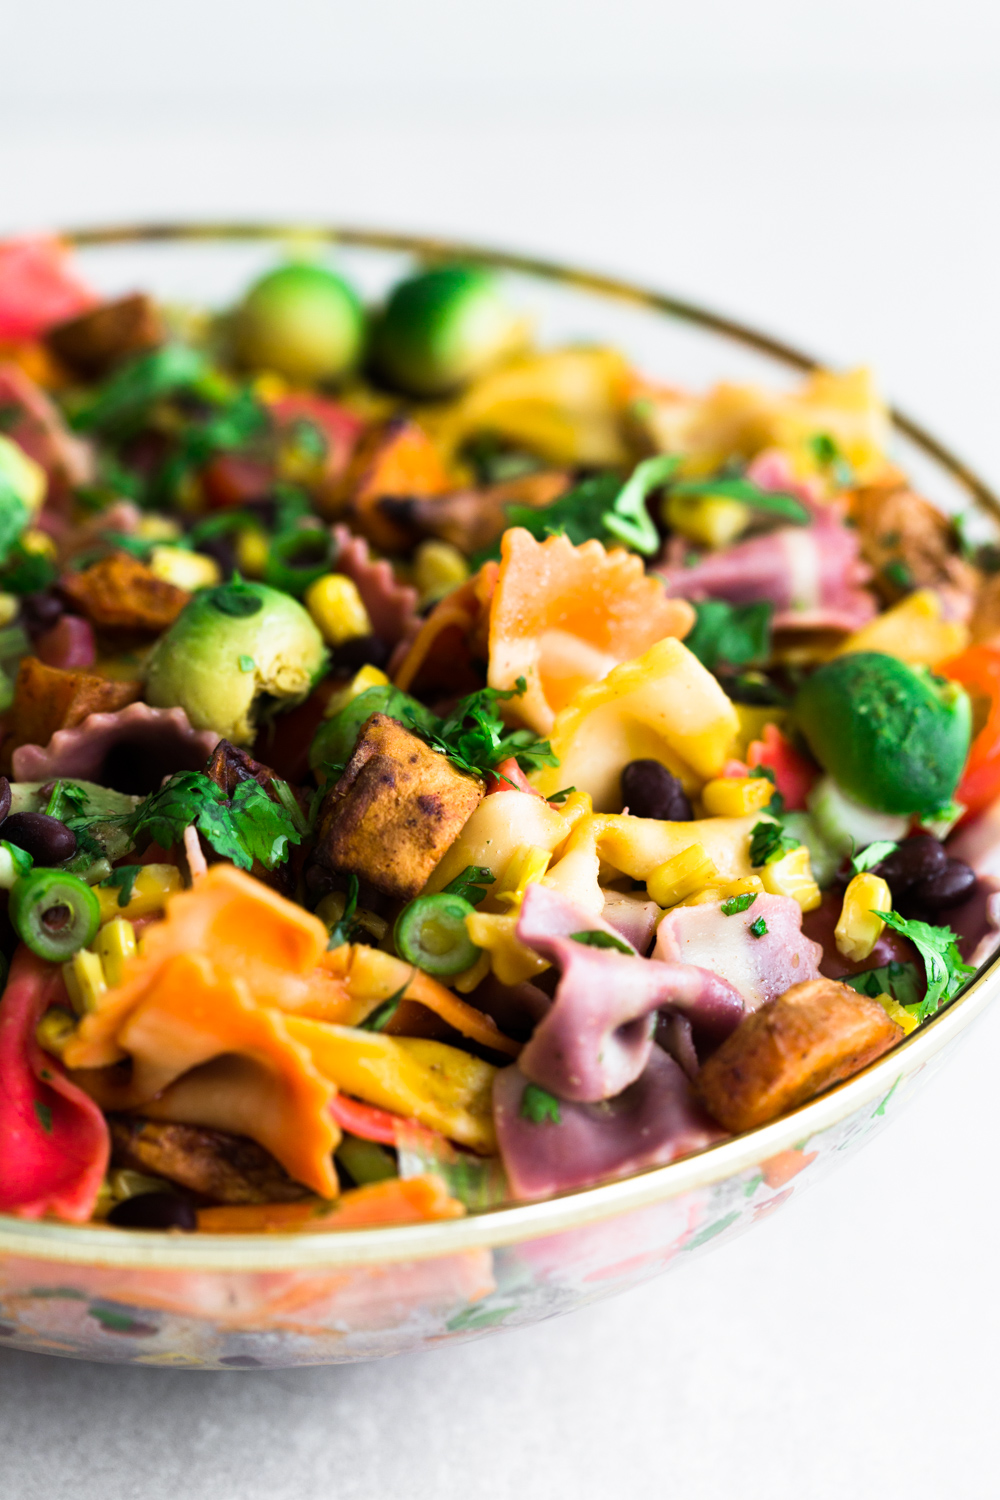 A Mexican inspired Vegan Southwestern Pasta Salad with Roasted Sweet Potato, Grilled Corn, Cherry Tomatoes, Black Beans & a Cumin Lime Vinaigrette. #healthy #vegan #pasta #salad #southwestern #mexican #corn #rainbow #salad #vegetarian #healthyrecipe